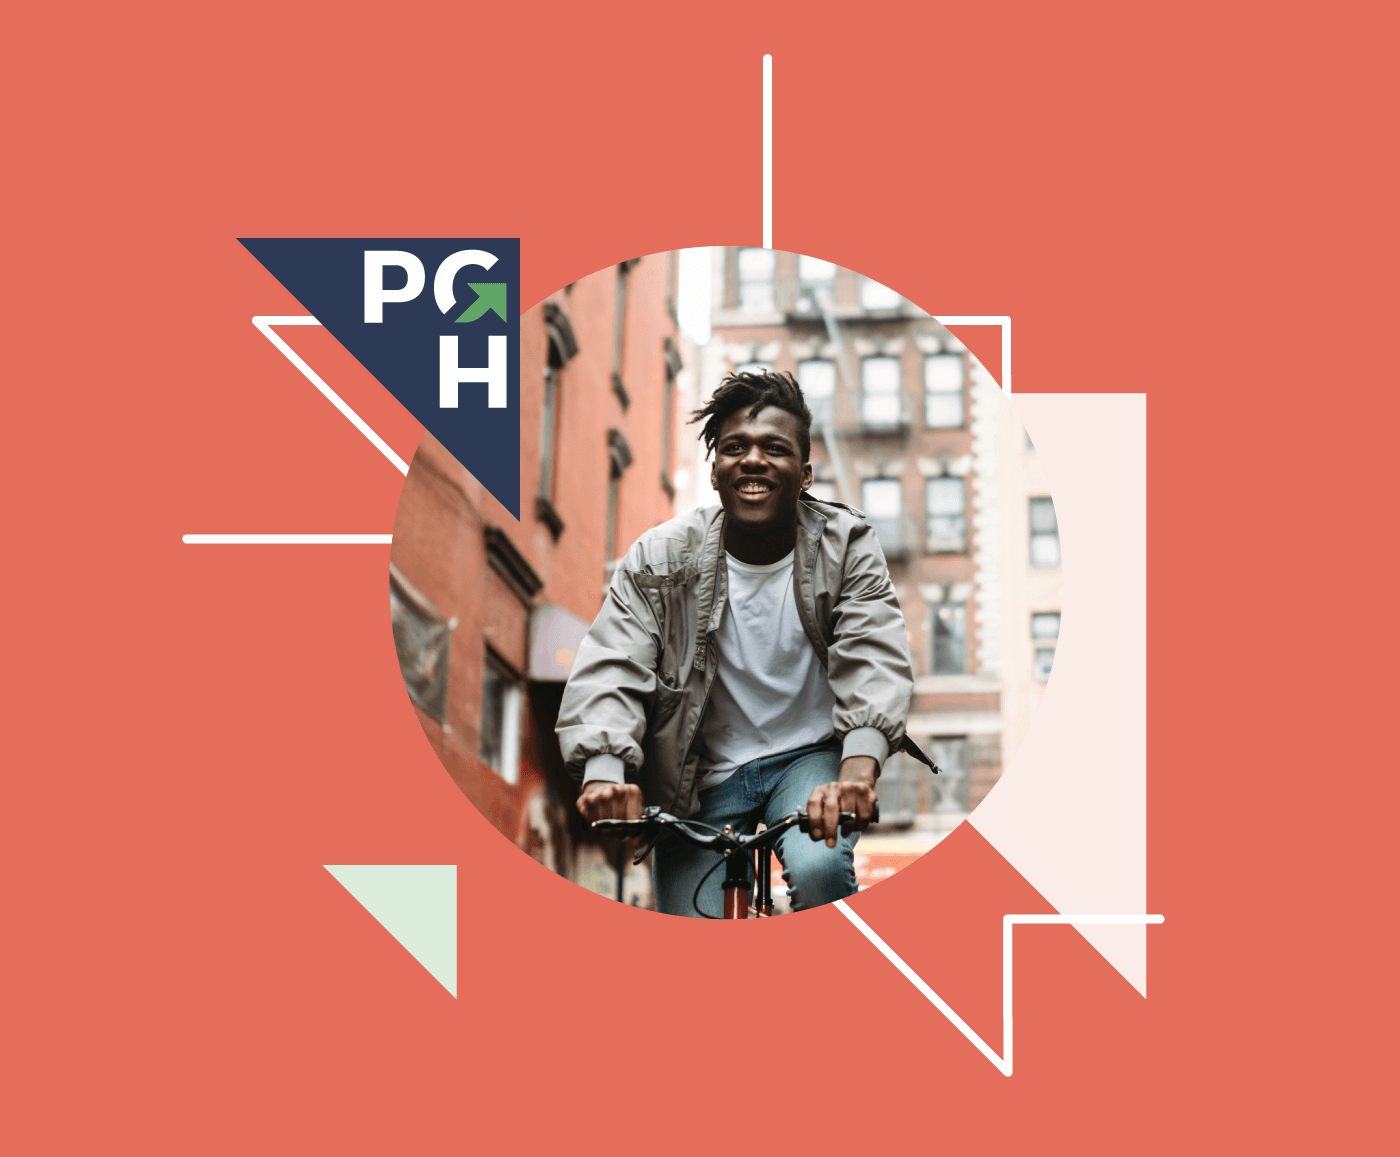 A PGH logo surrounded by branded graphics and an image of a person riding their bike downtown.